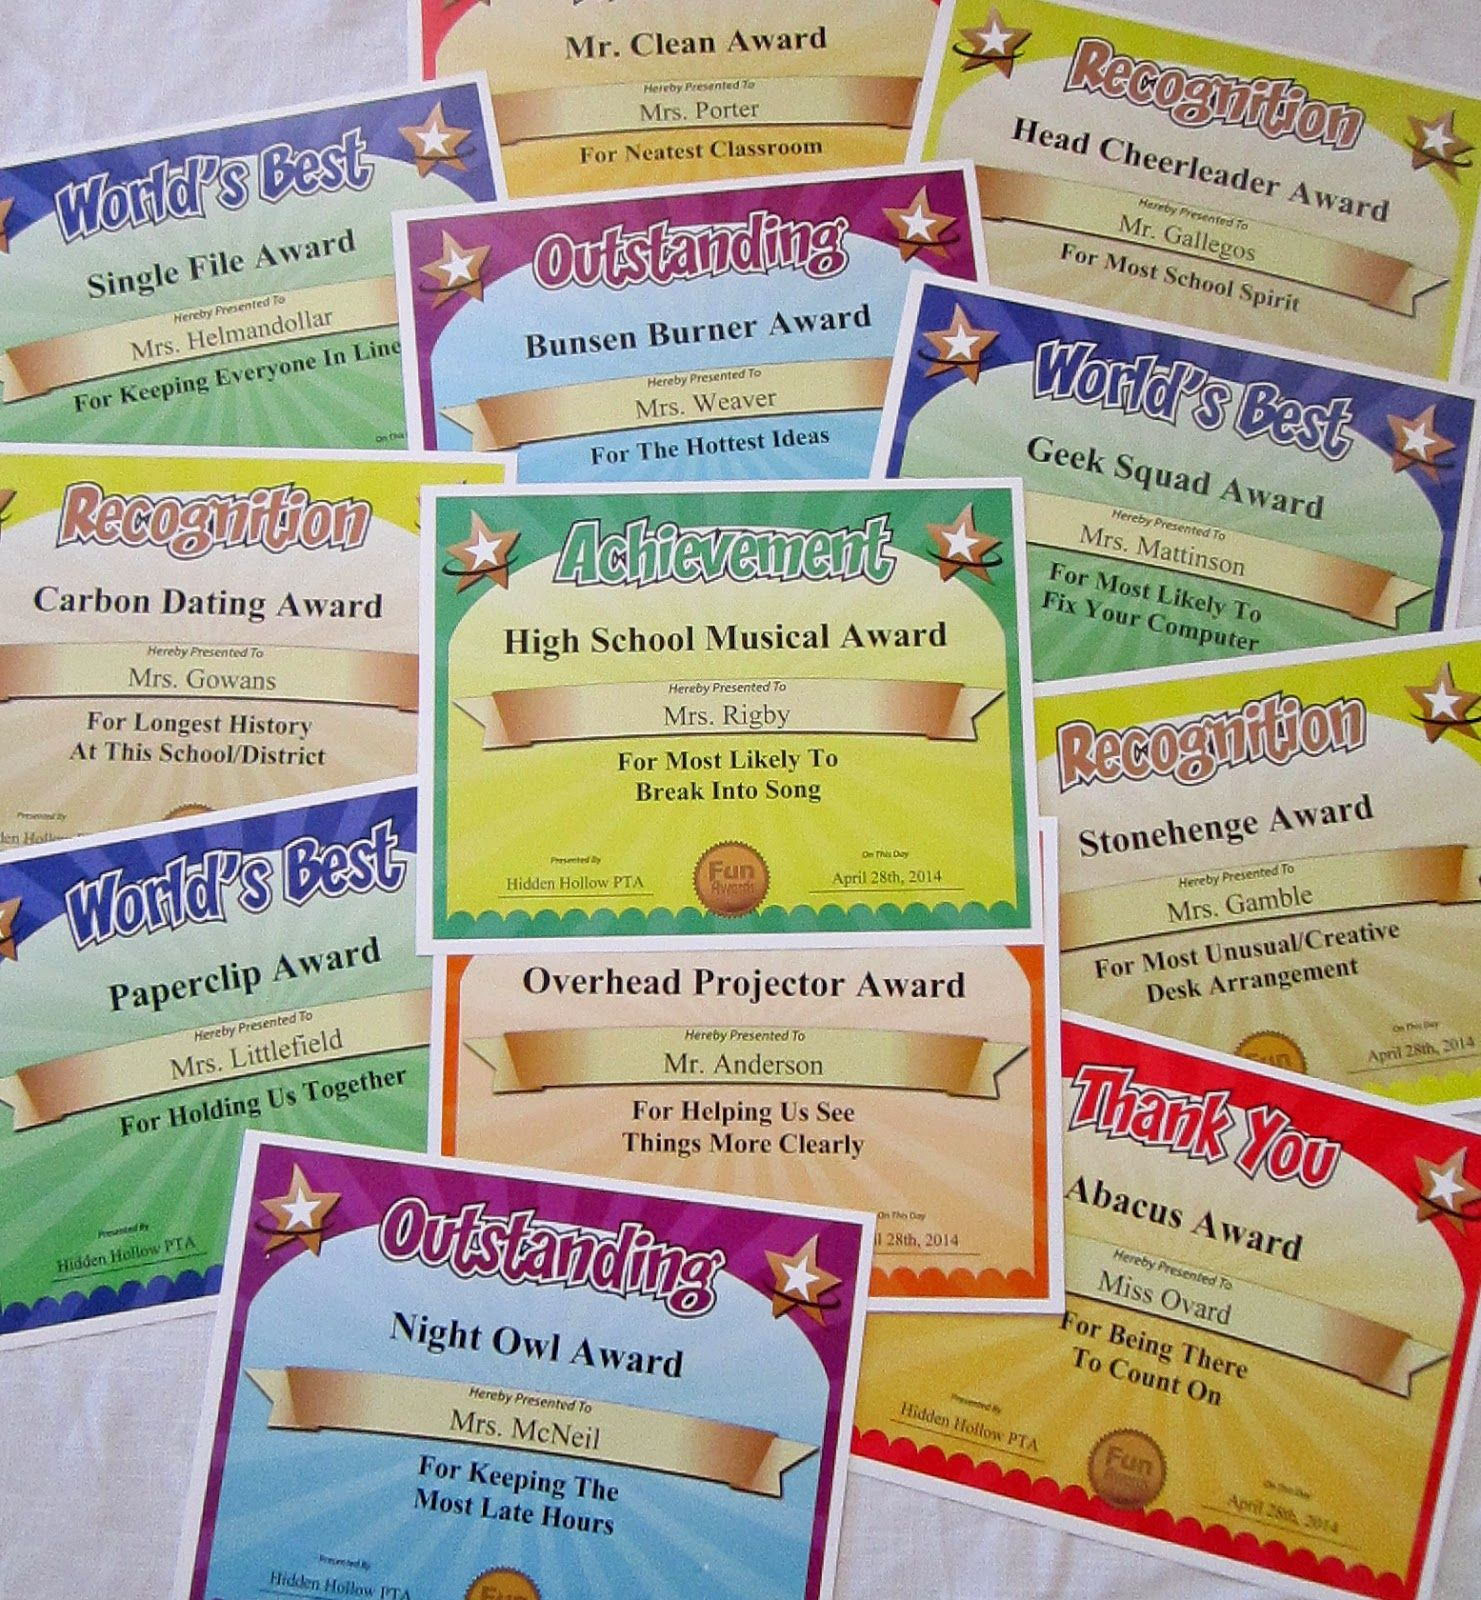 Funny Award Ideas For Employees Humorous Awards For The Office Gag Awards For Staff Sill Teacher Appreciation Week Funny Teacher Awards Teacher Appreciation